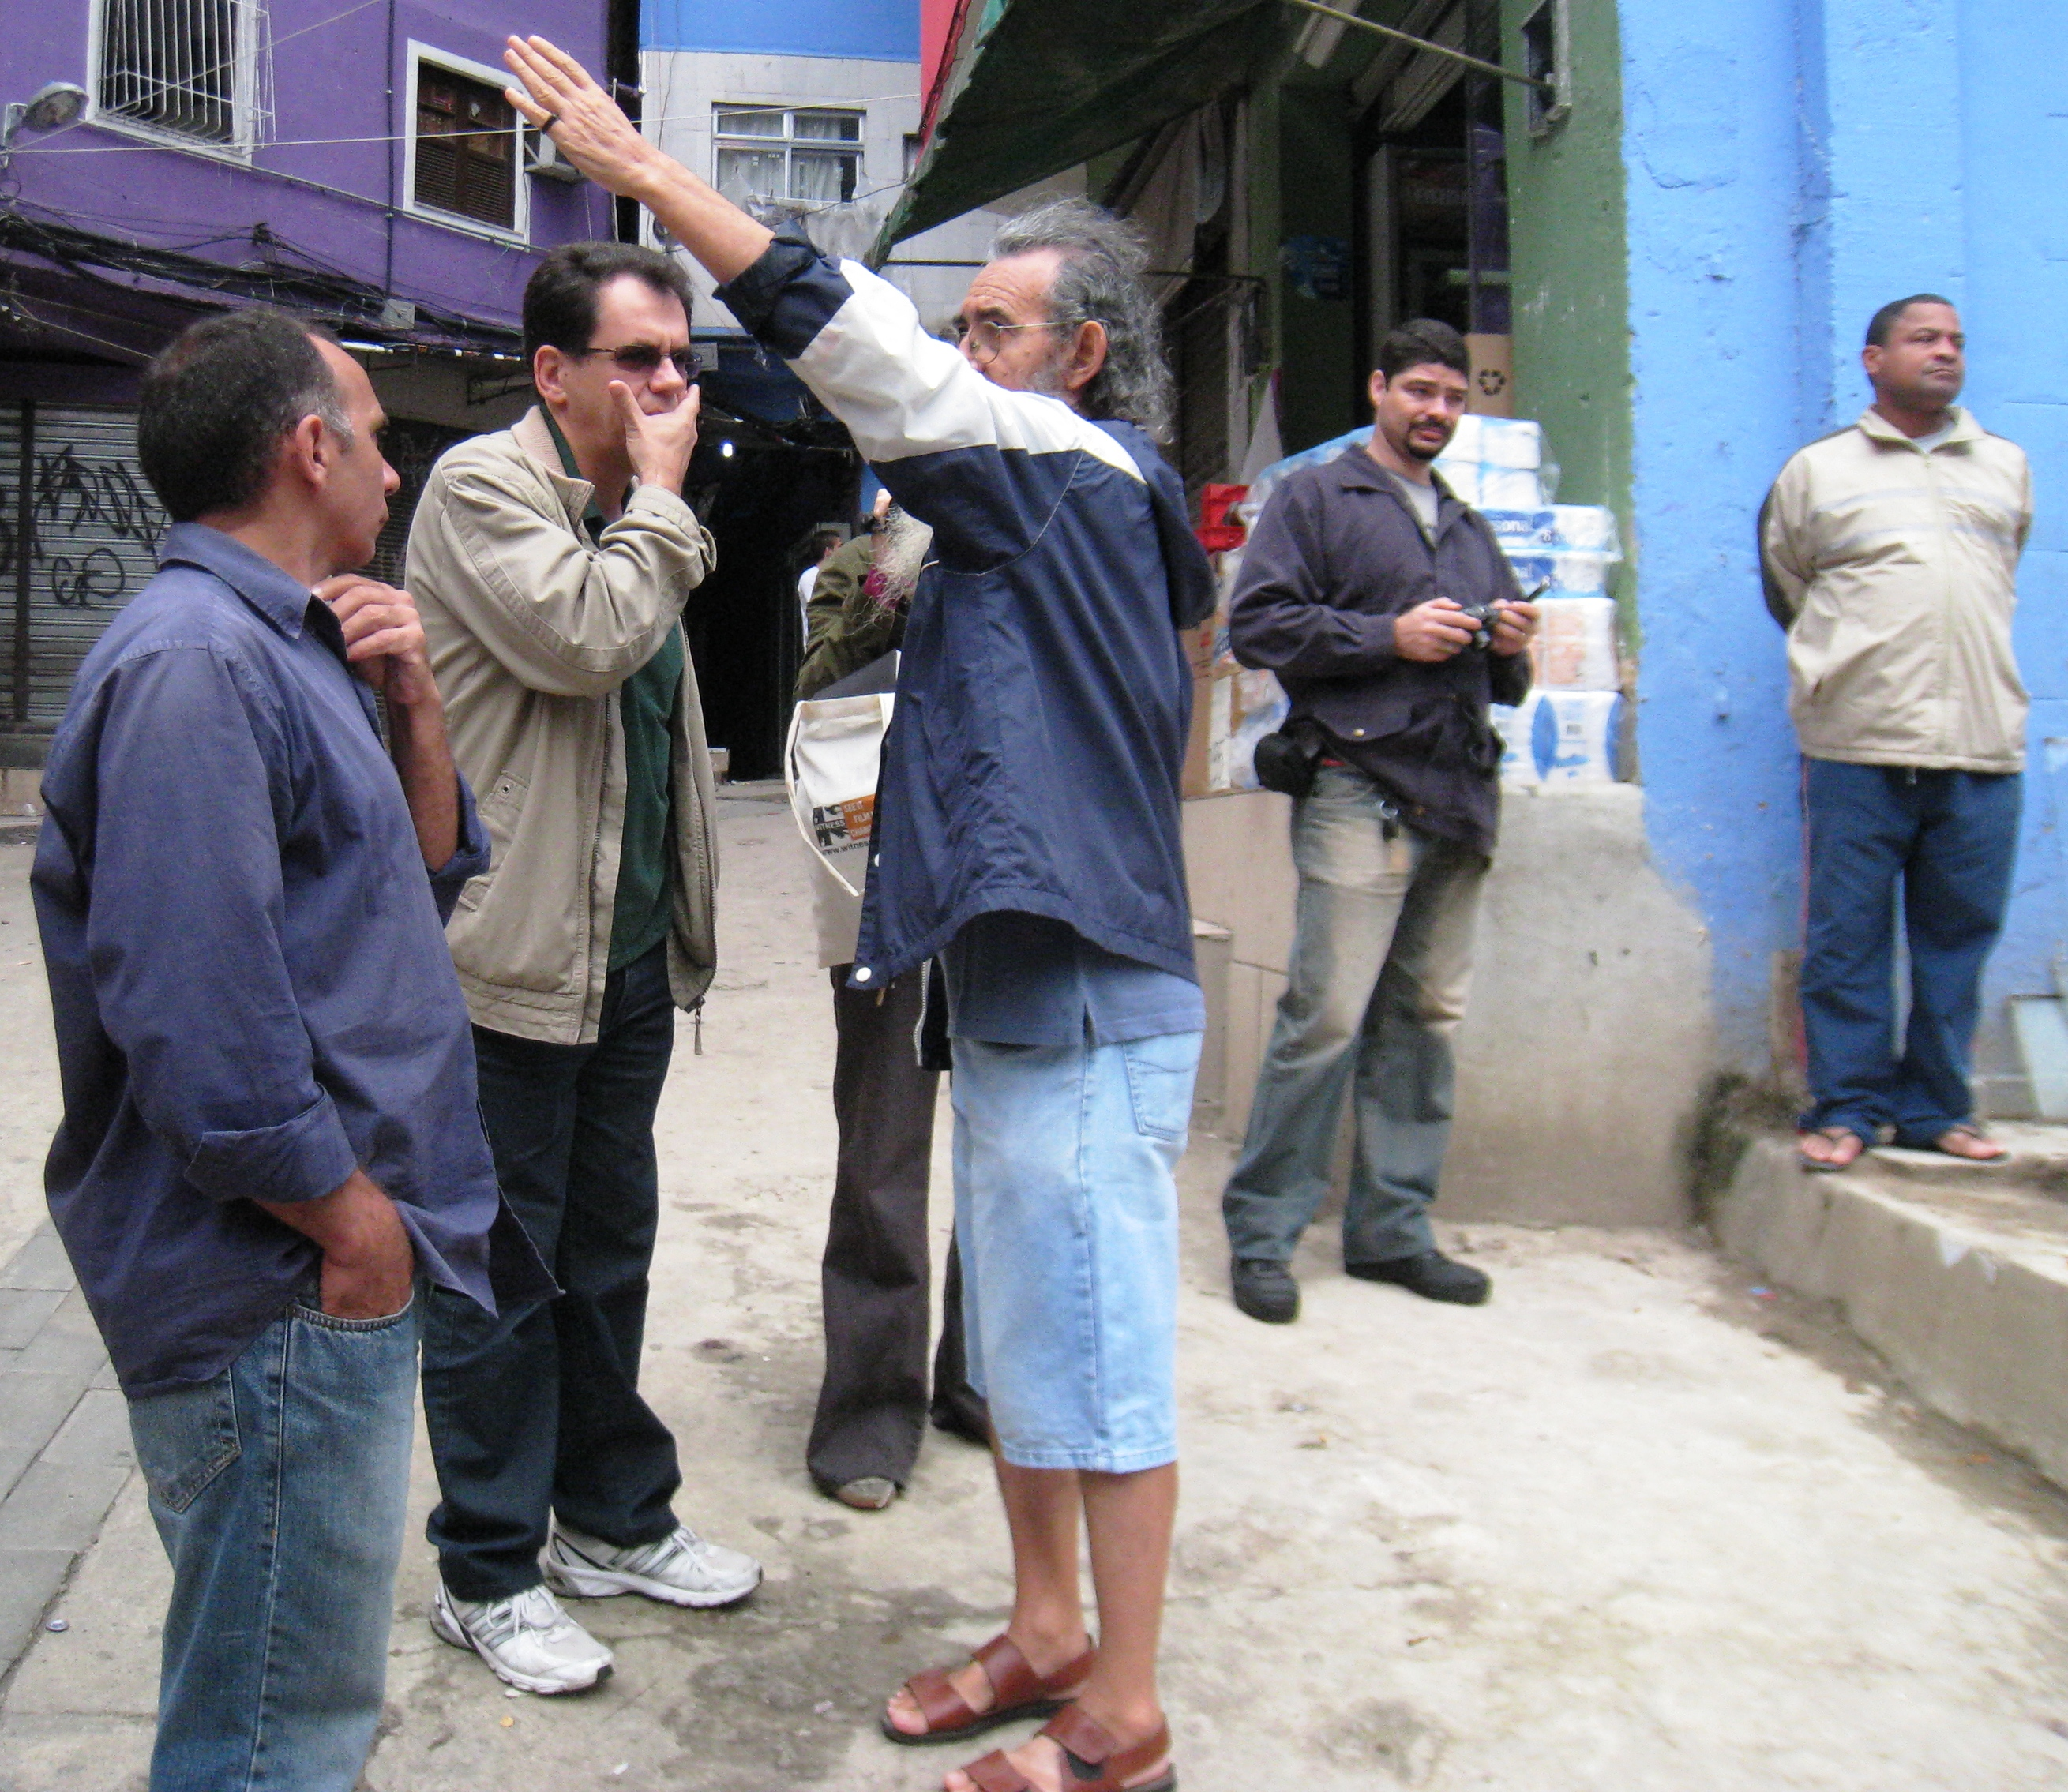 Seu Martins speaks with Vereador Reimont about PAC I projects in Rocinha